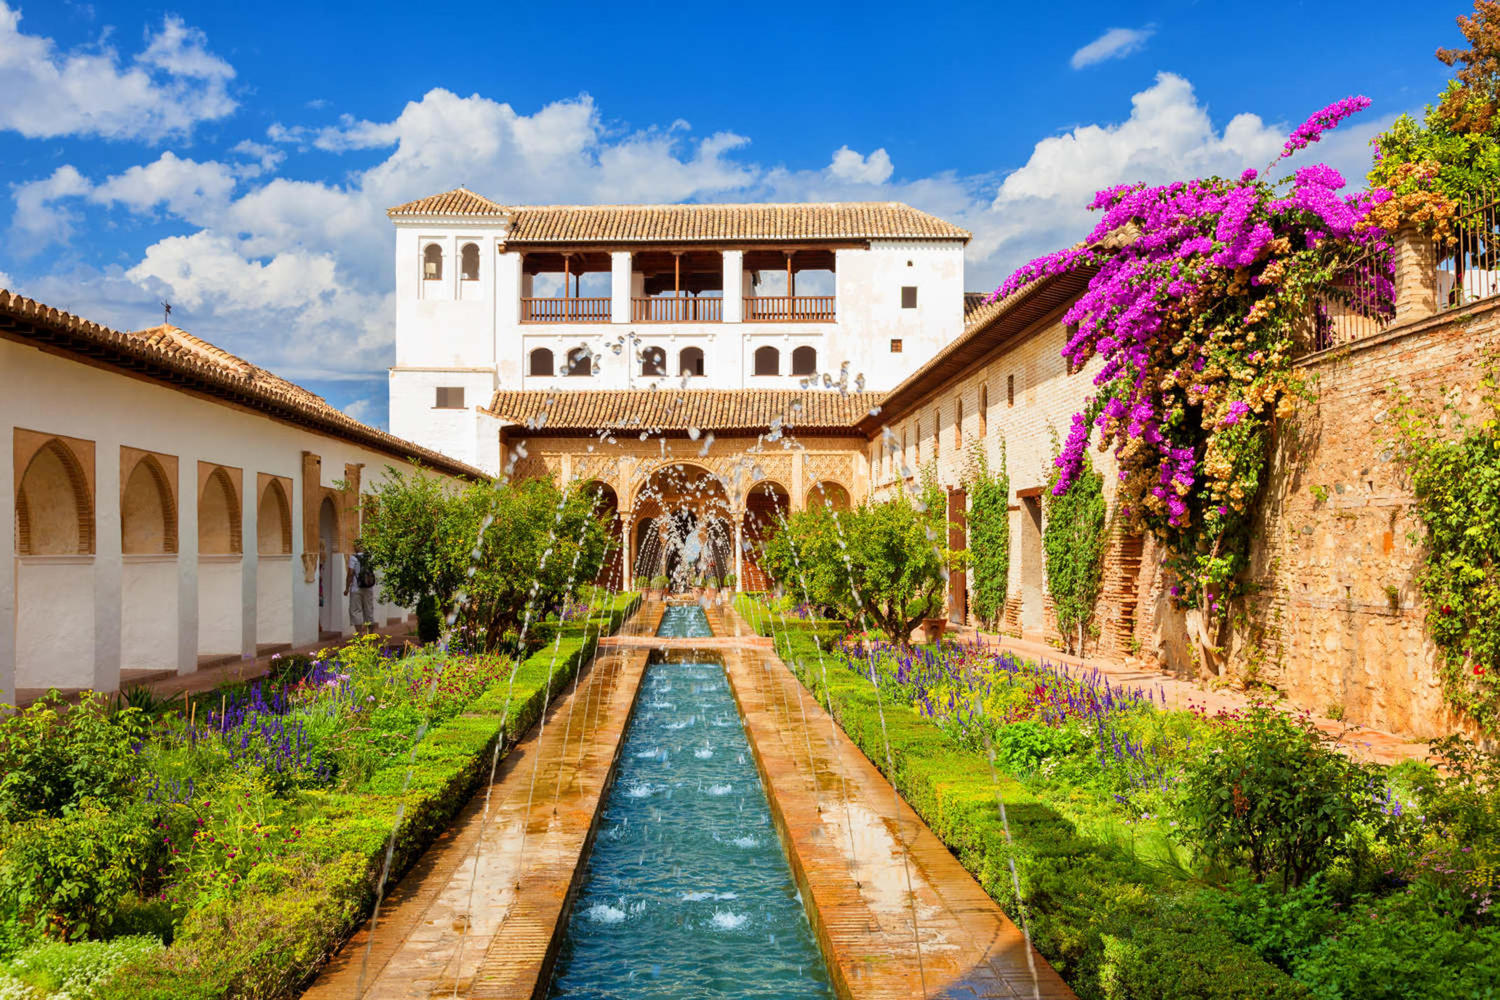 View of the Generalife courtyard with its famous fountain and garden at La Alhambra